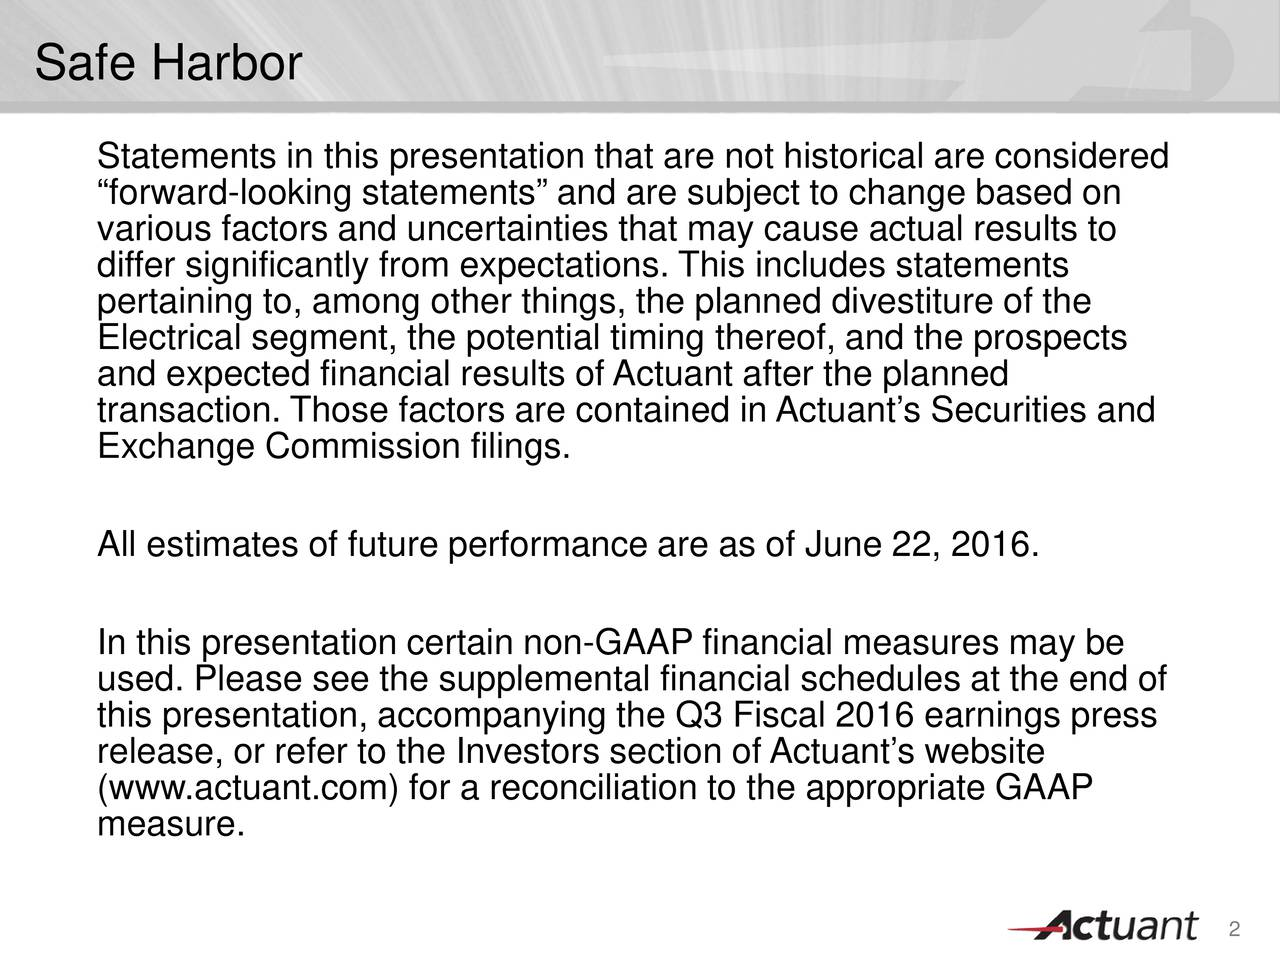 Statements in this presentation that are not historical are considered forward-looking statements and are subject to change based on various factors and uncertainties that may cause actual results to differ significantly from expectations. This includes statements pertaining to, among other things, the planned divestiture of the Electrical segment, the potential timing thereof, and the prospects and expected financial results of Actuant after the planned transaction. Those factors are contained in Actuants Securities and Exchange Commission filings. All estimates of future performance are as of June 22, 2016. In this presentation certain non-GAAP financial measures may be used. Please see the supplemental financial schedules at the end of this presentation, accompanying the Q3 Fiscal 2016 earnings press release, or refer to the Investors section ofActuants website (www.actuant.com) for a reconciliation to the appropriate GAAP measure. 2